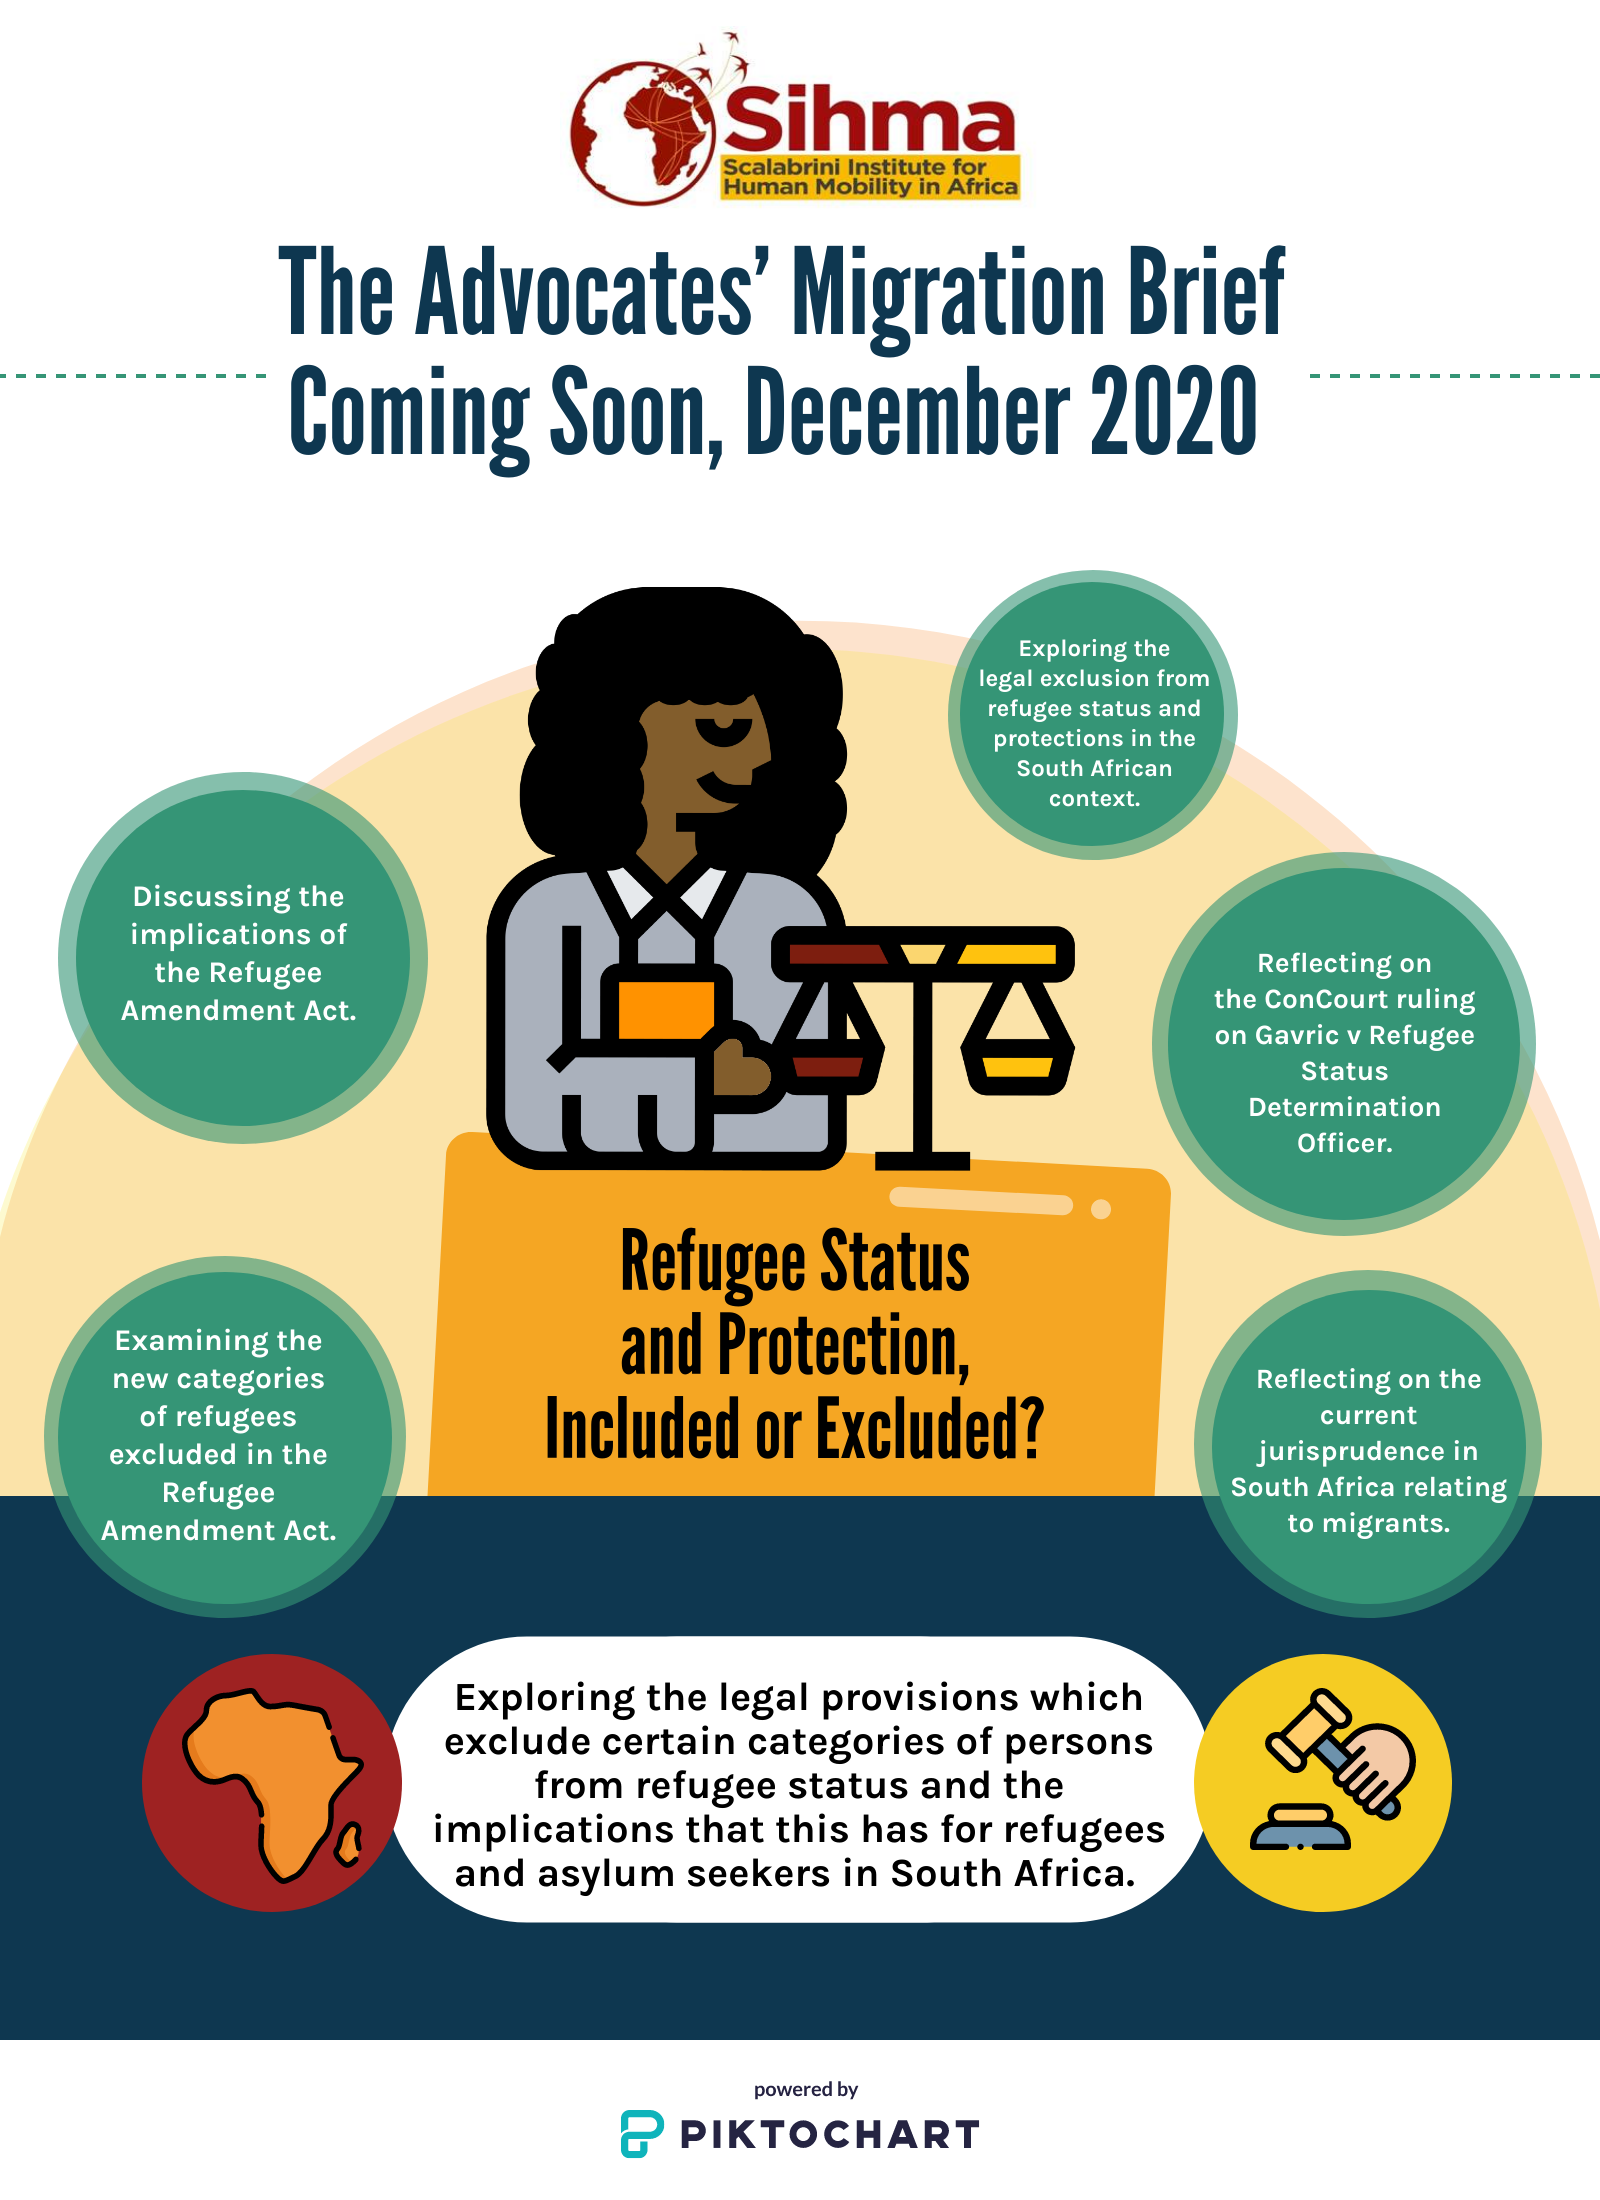 https://www.sihma.org.za/photos/shares/advocates-migra_.png